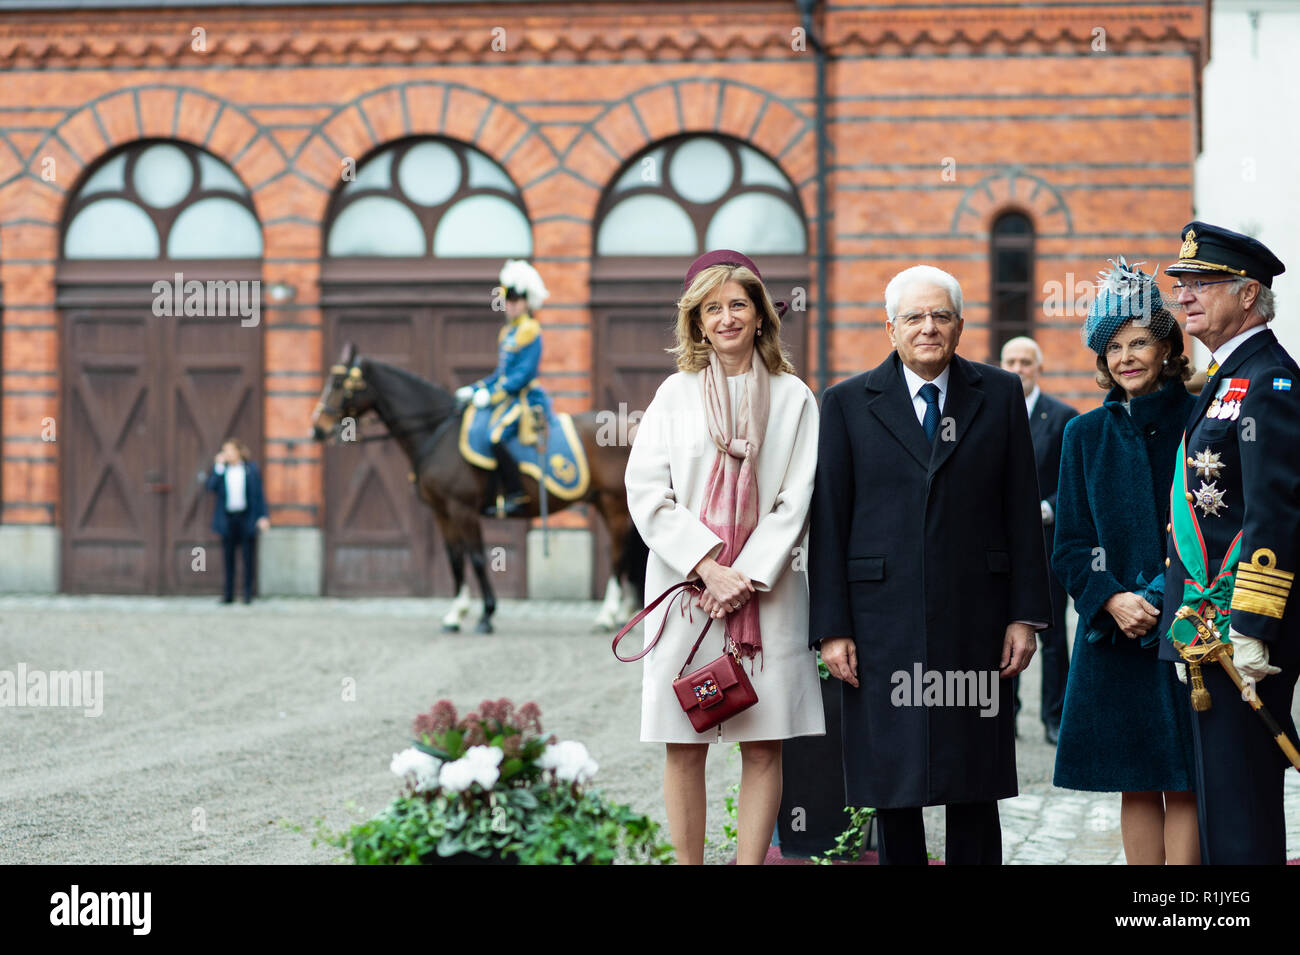 Stockholm, Sweden, November 13, 2018. President of Italy, Sergio Mattarella and First Lady of Italy, Laura Mattarella, visiting Sweden at the invitation of The King of Sweden. The royal couple meets the presidential couple at the Royal Stables for the cortege. Credit: Barbro Bergfeldt/Alamy Live News Stock Photo